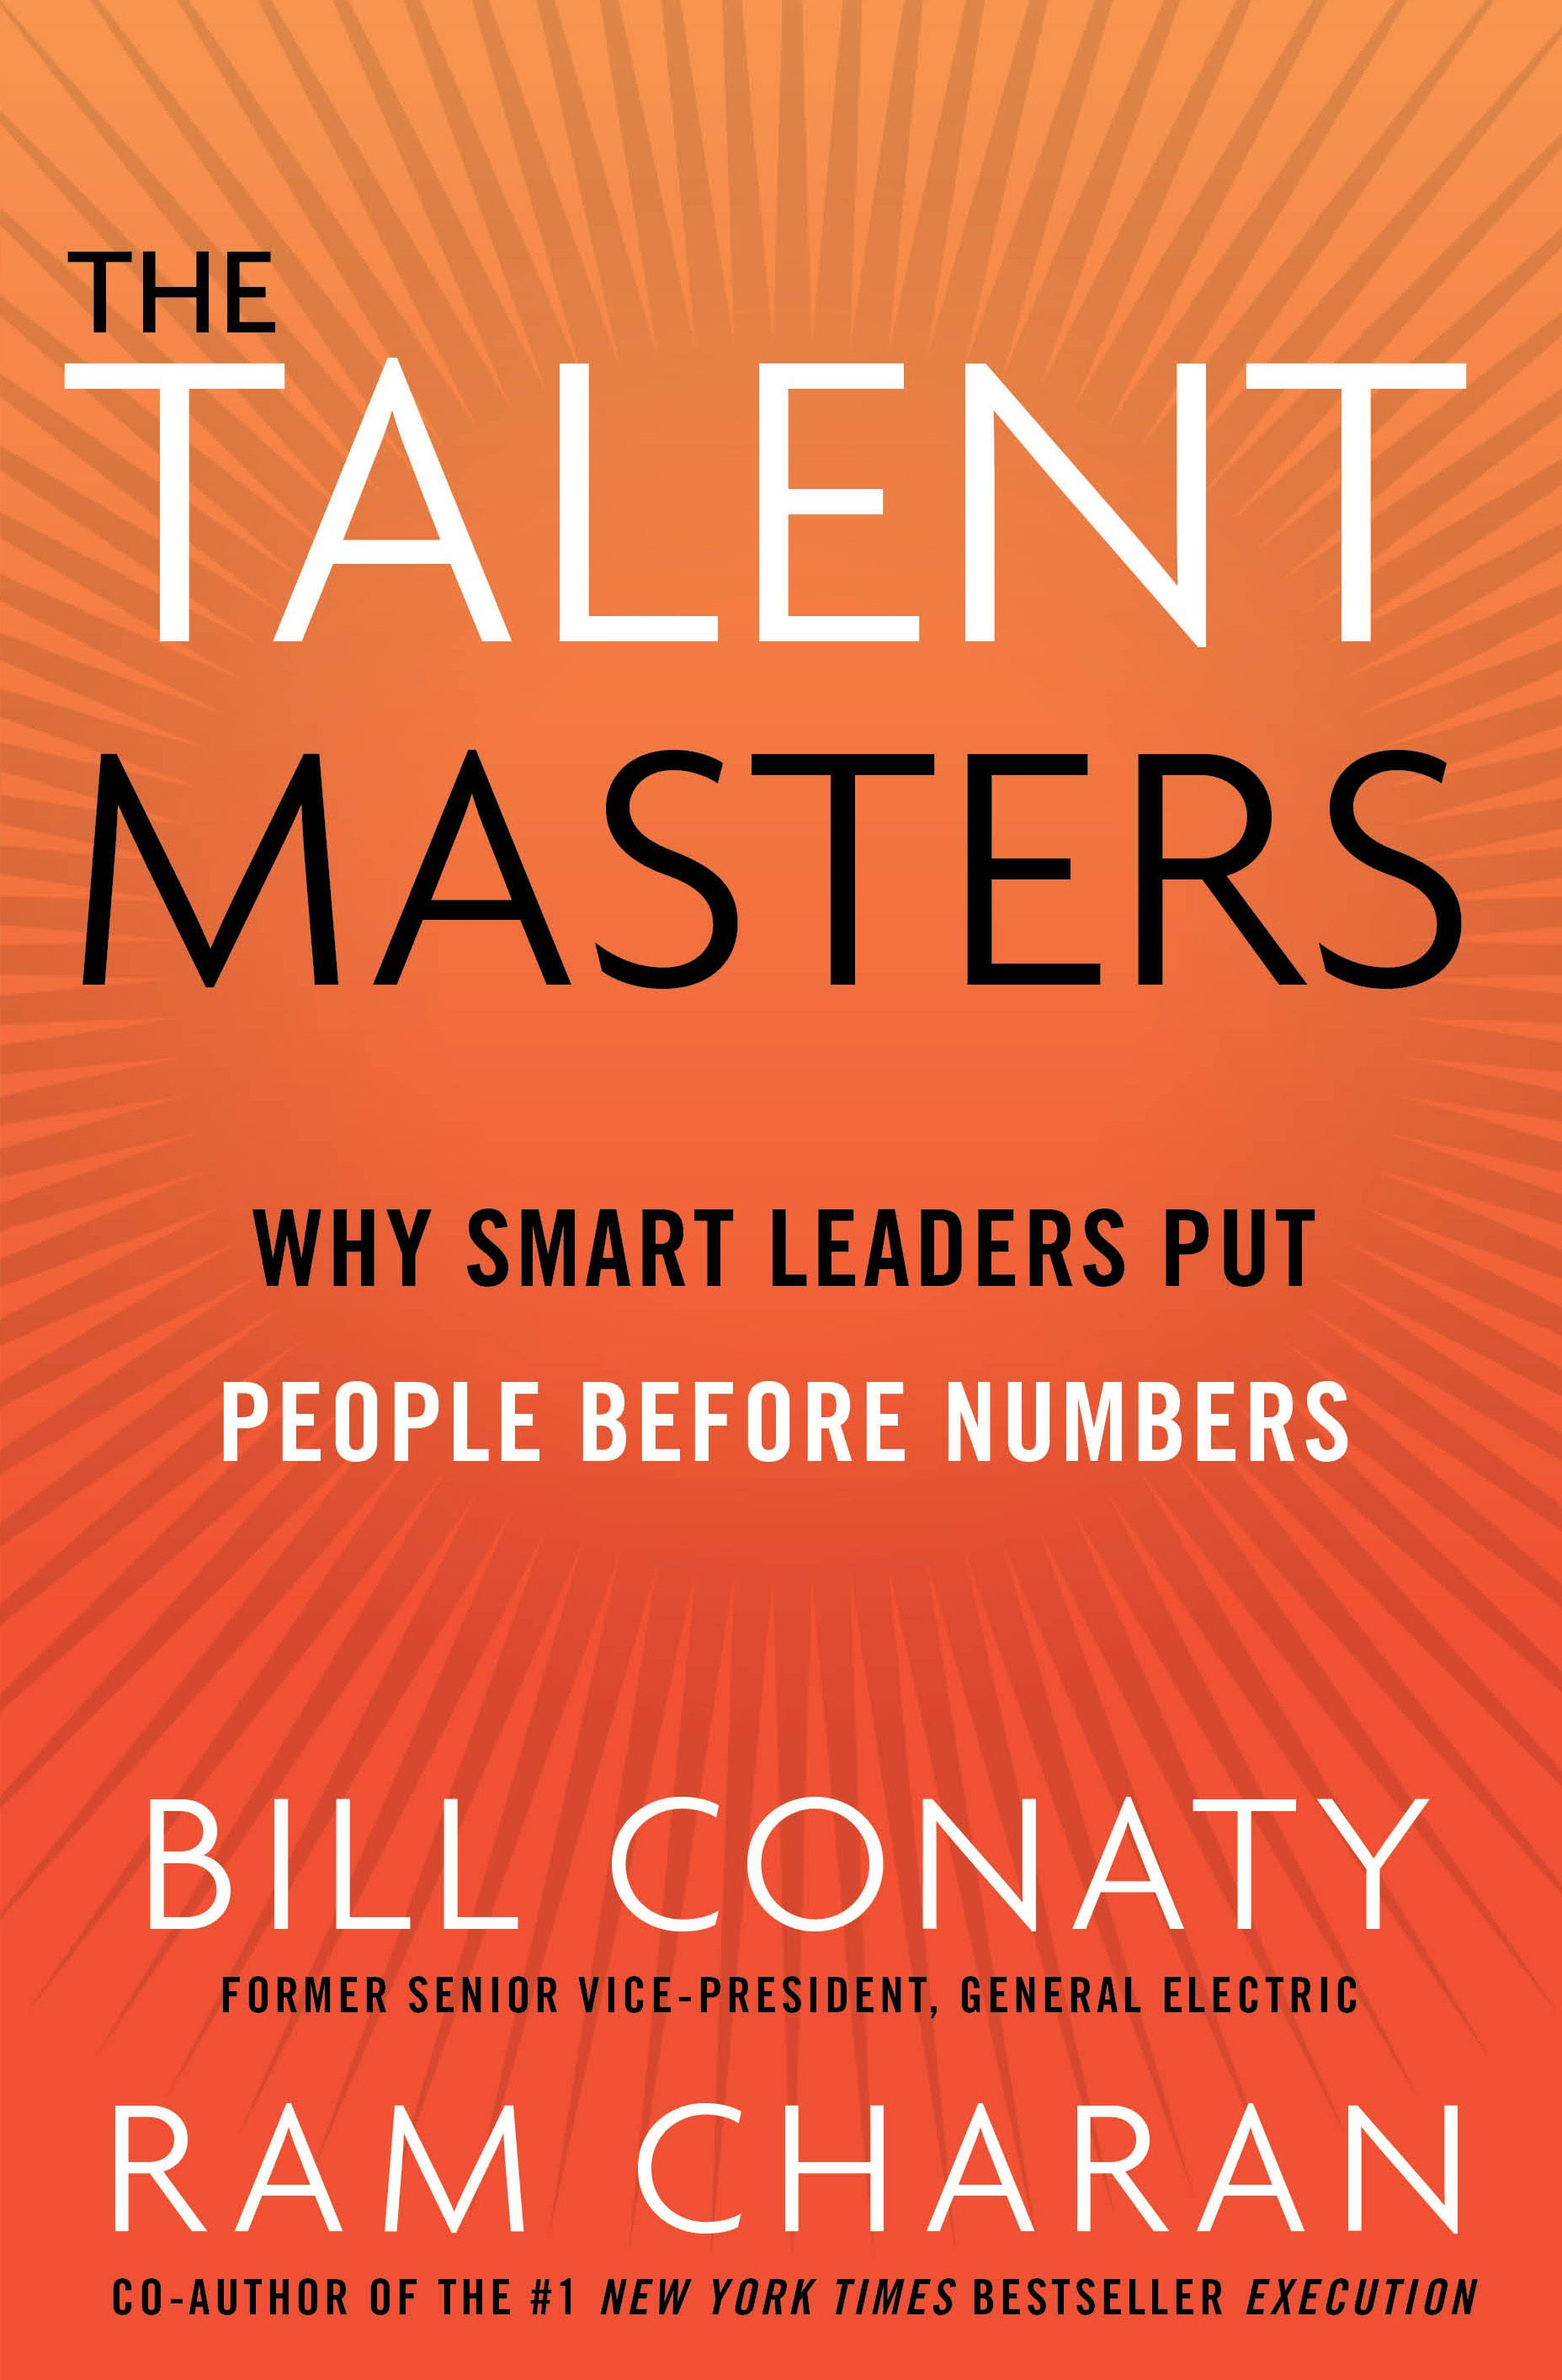 The Talent Masters Why Smart Leaders Put People Before Numbers